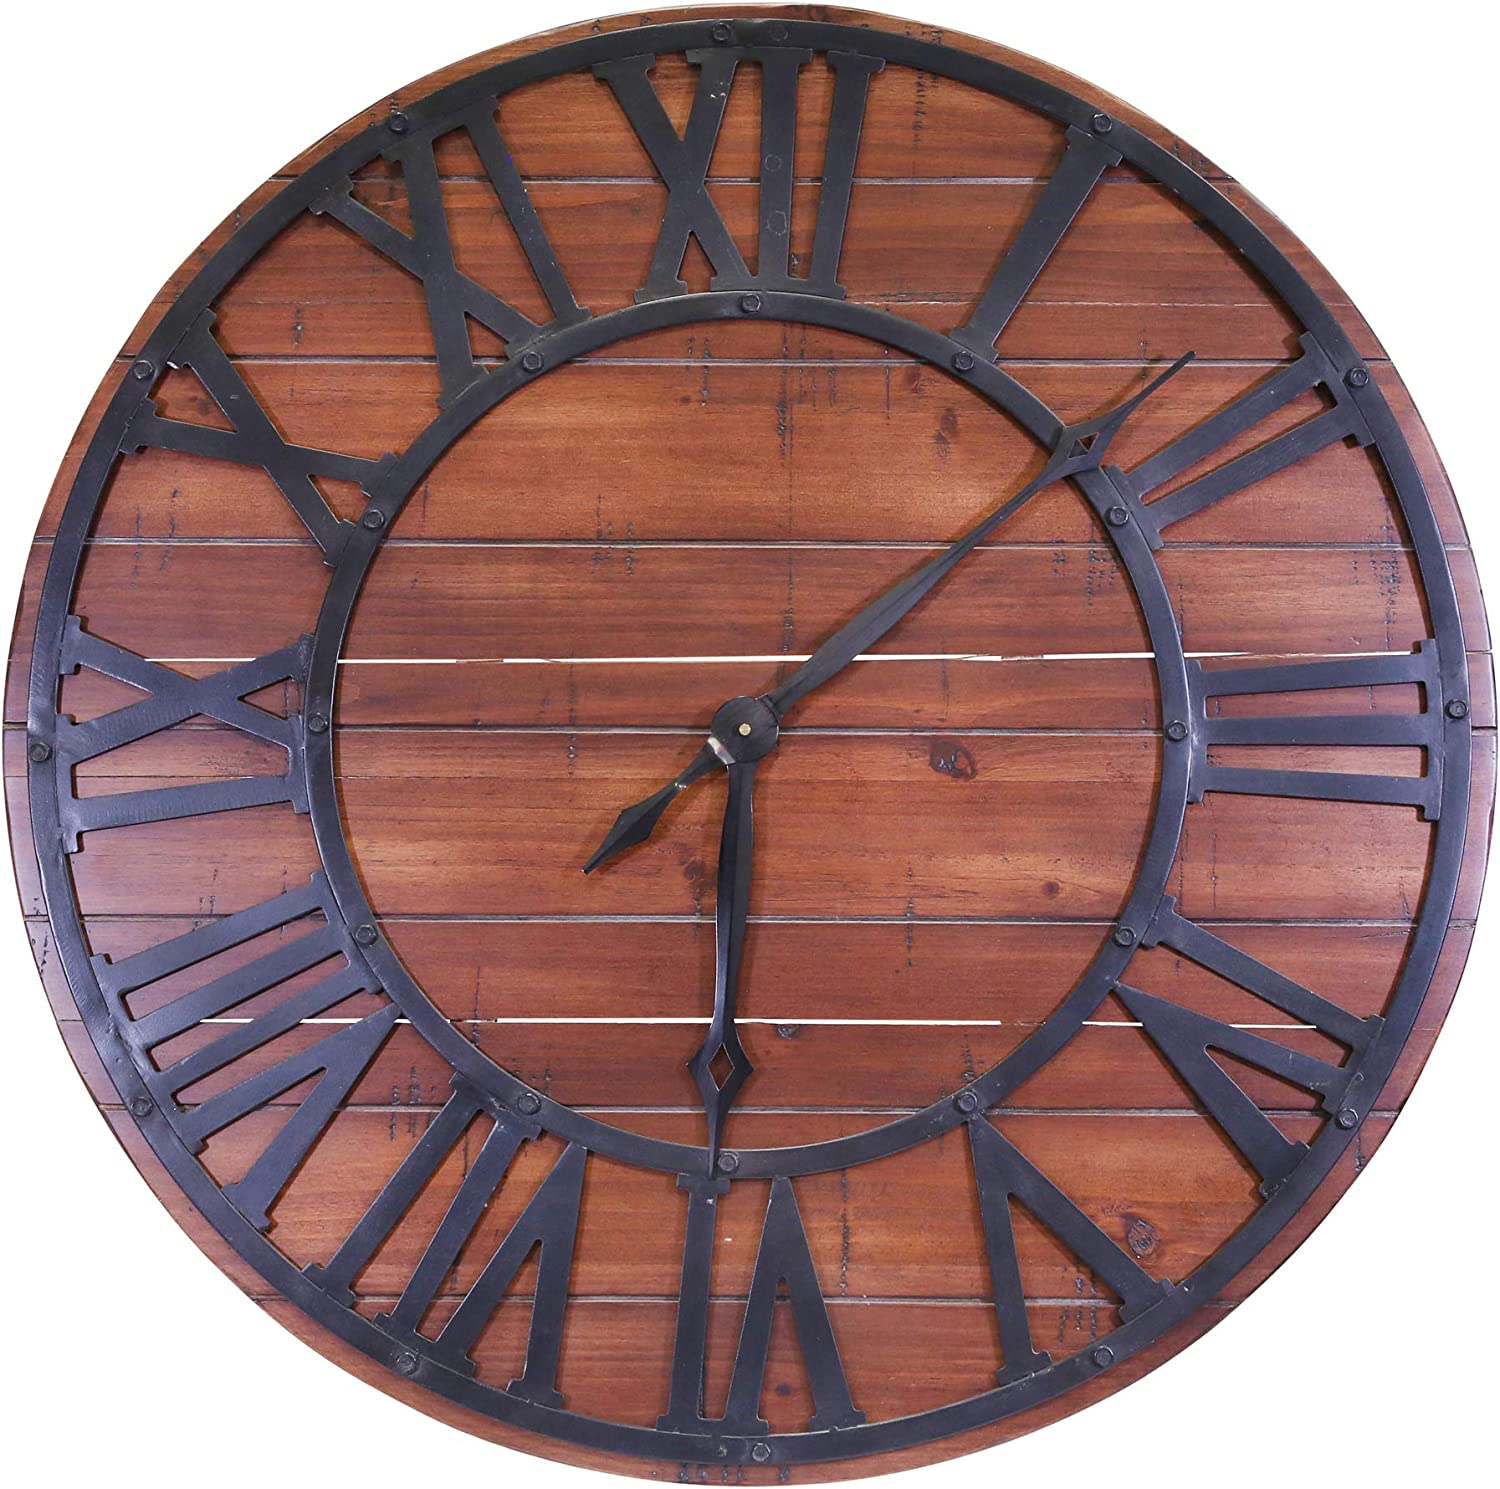 Sagebrook Home 12779 Wood Wall Clock, 31 x 31 x 1.25, Brown